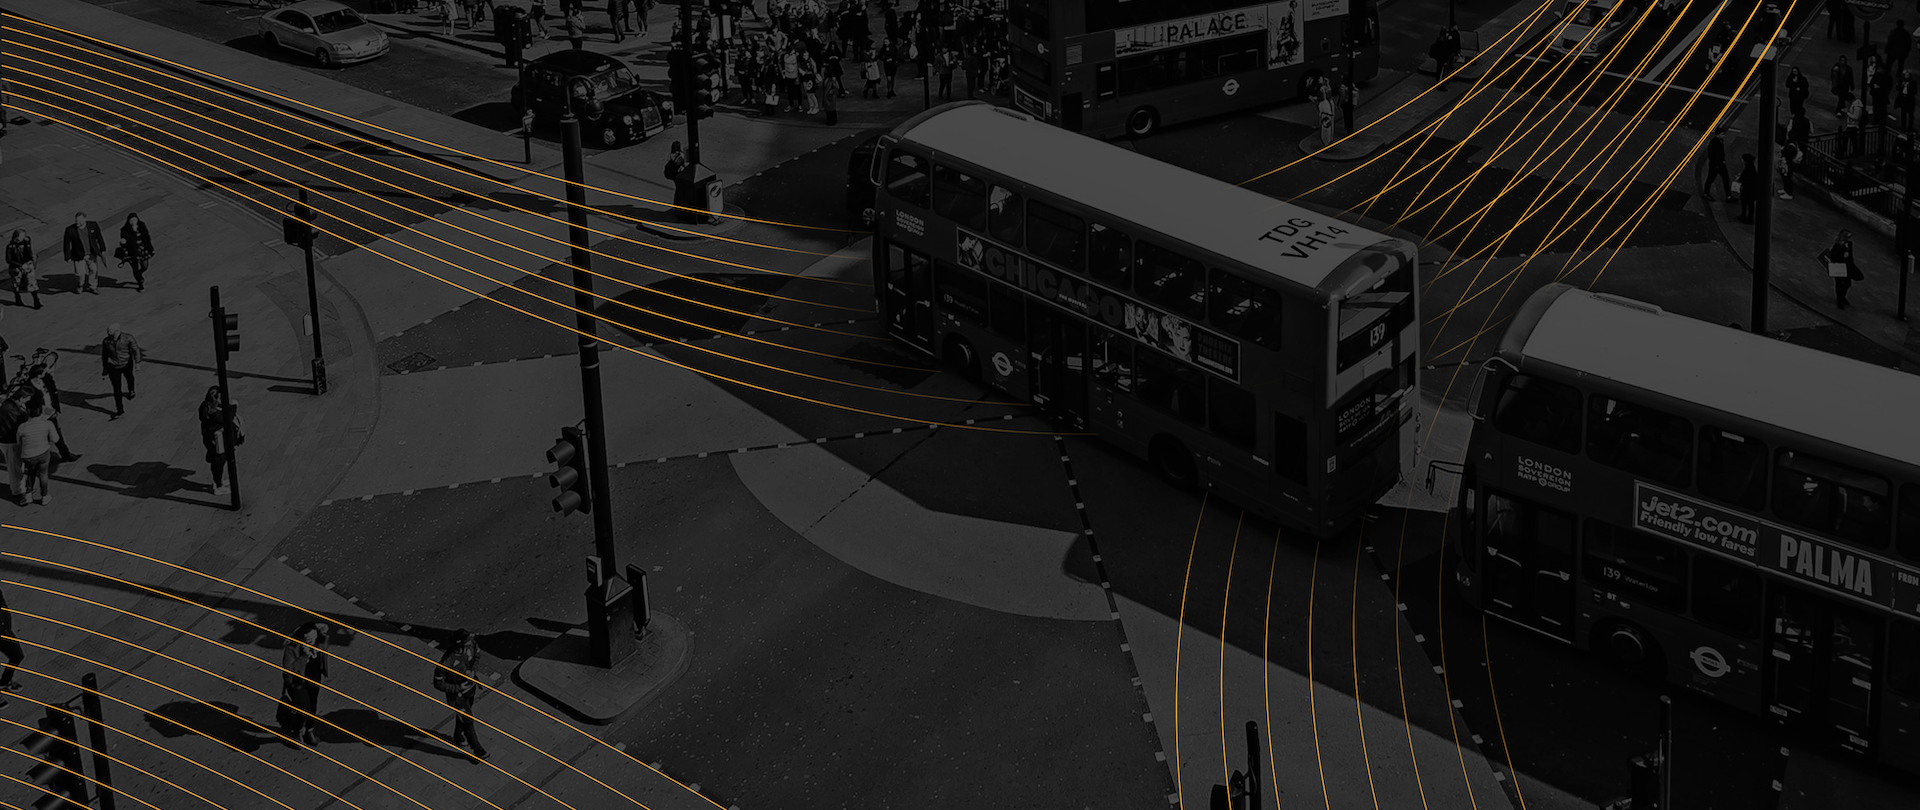 Smart city intersection showing converging lines representing autonomous vehicle traffic